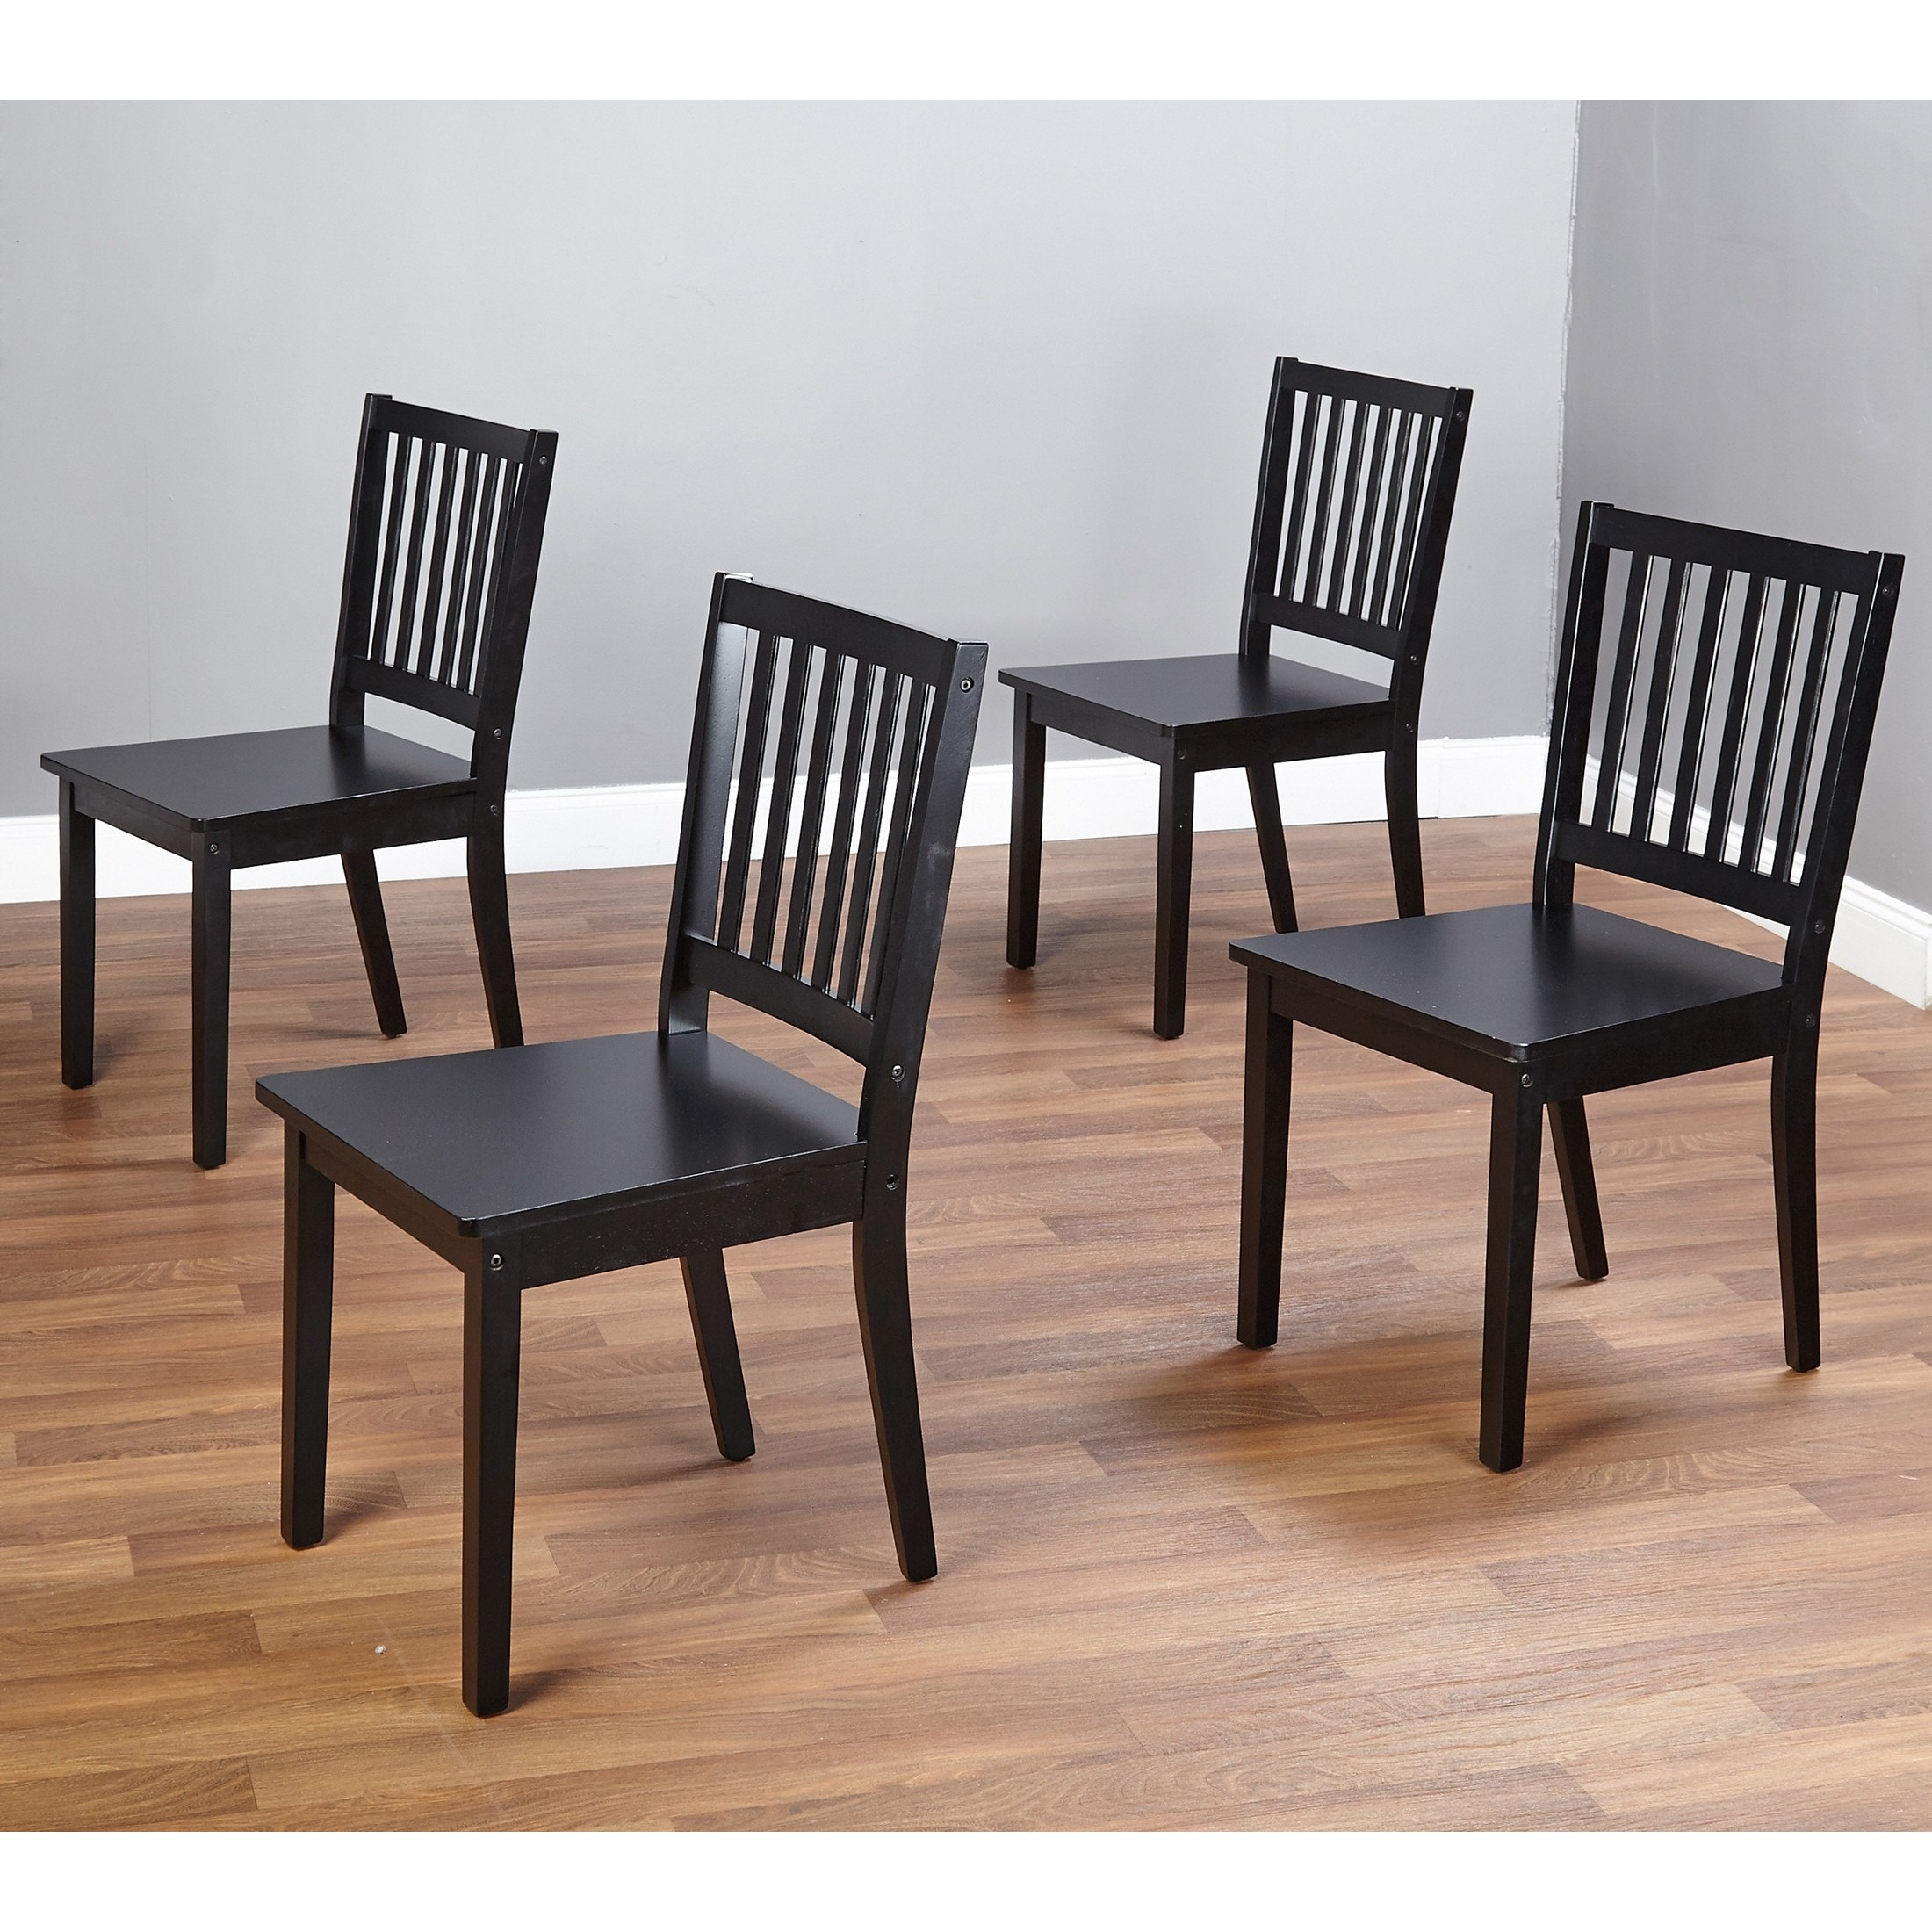 Dining Table Sets Black And White Dining Table 4 Chairs: Simple Living Slat Black Rubberwood Dining Chairs (Set Of